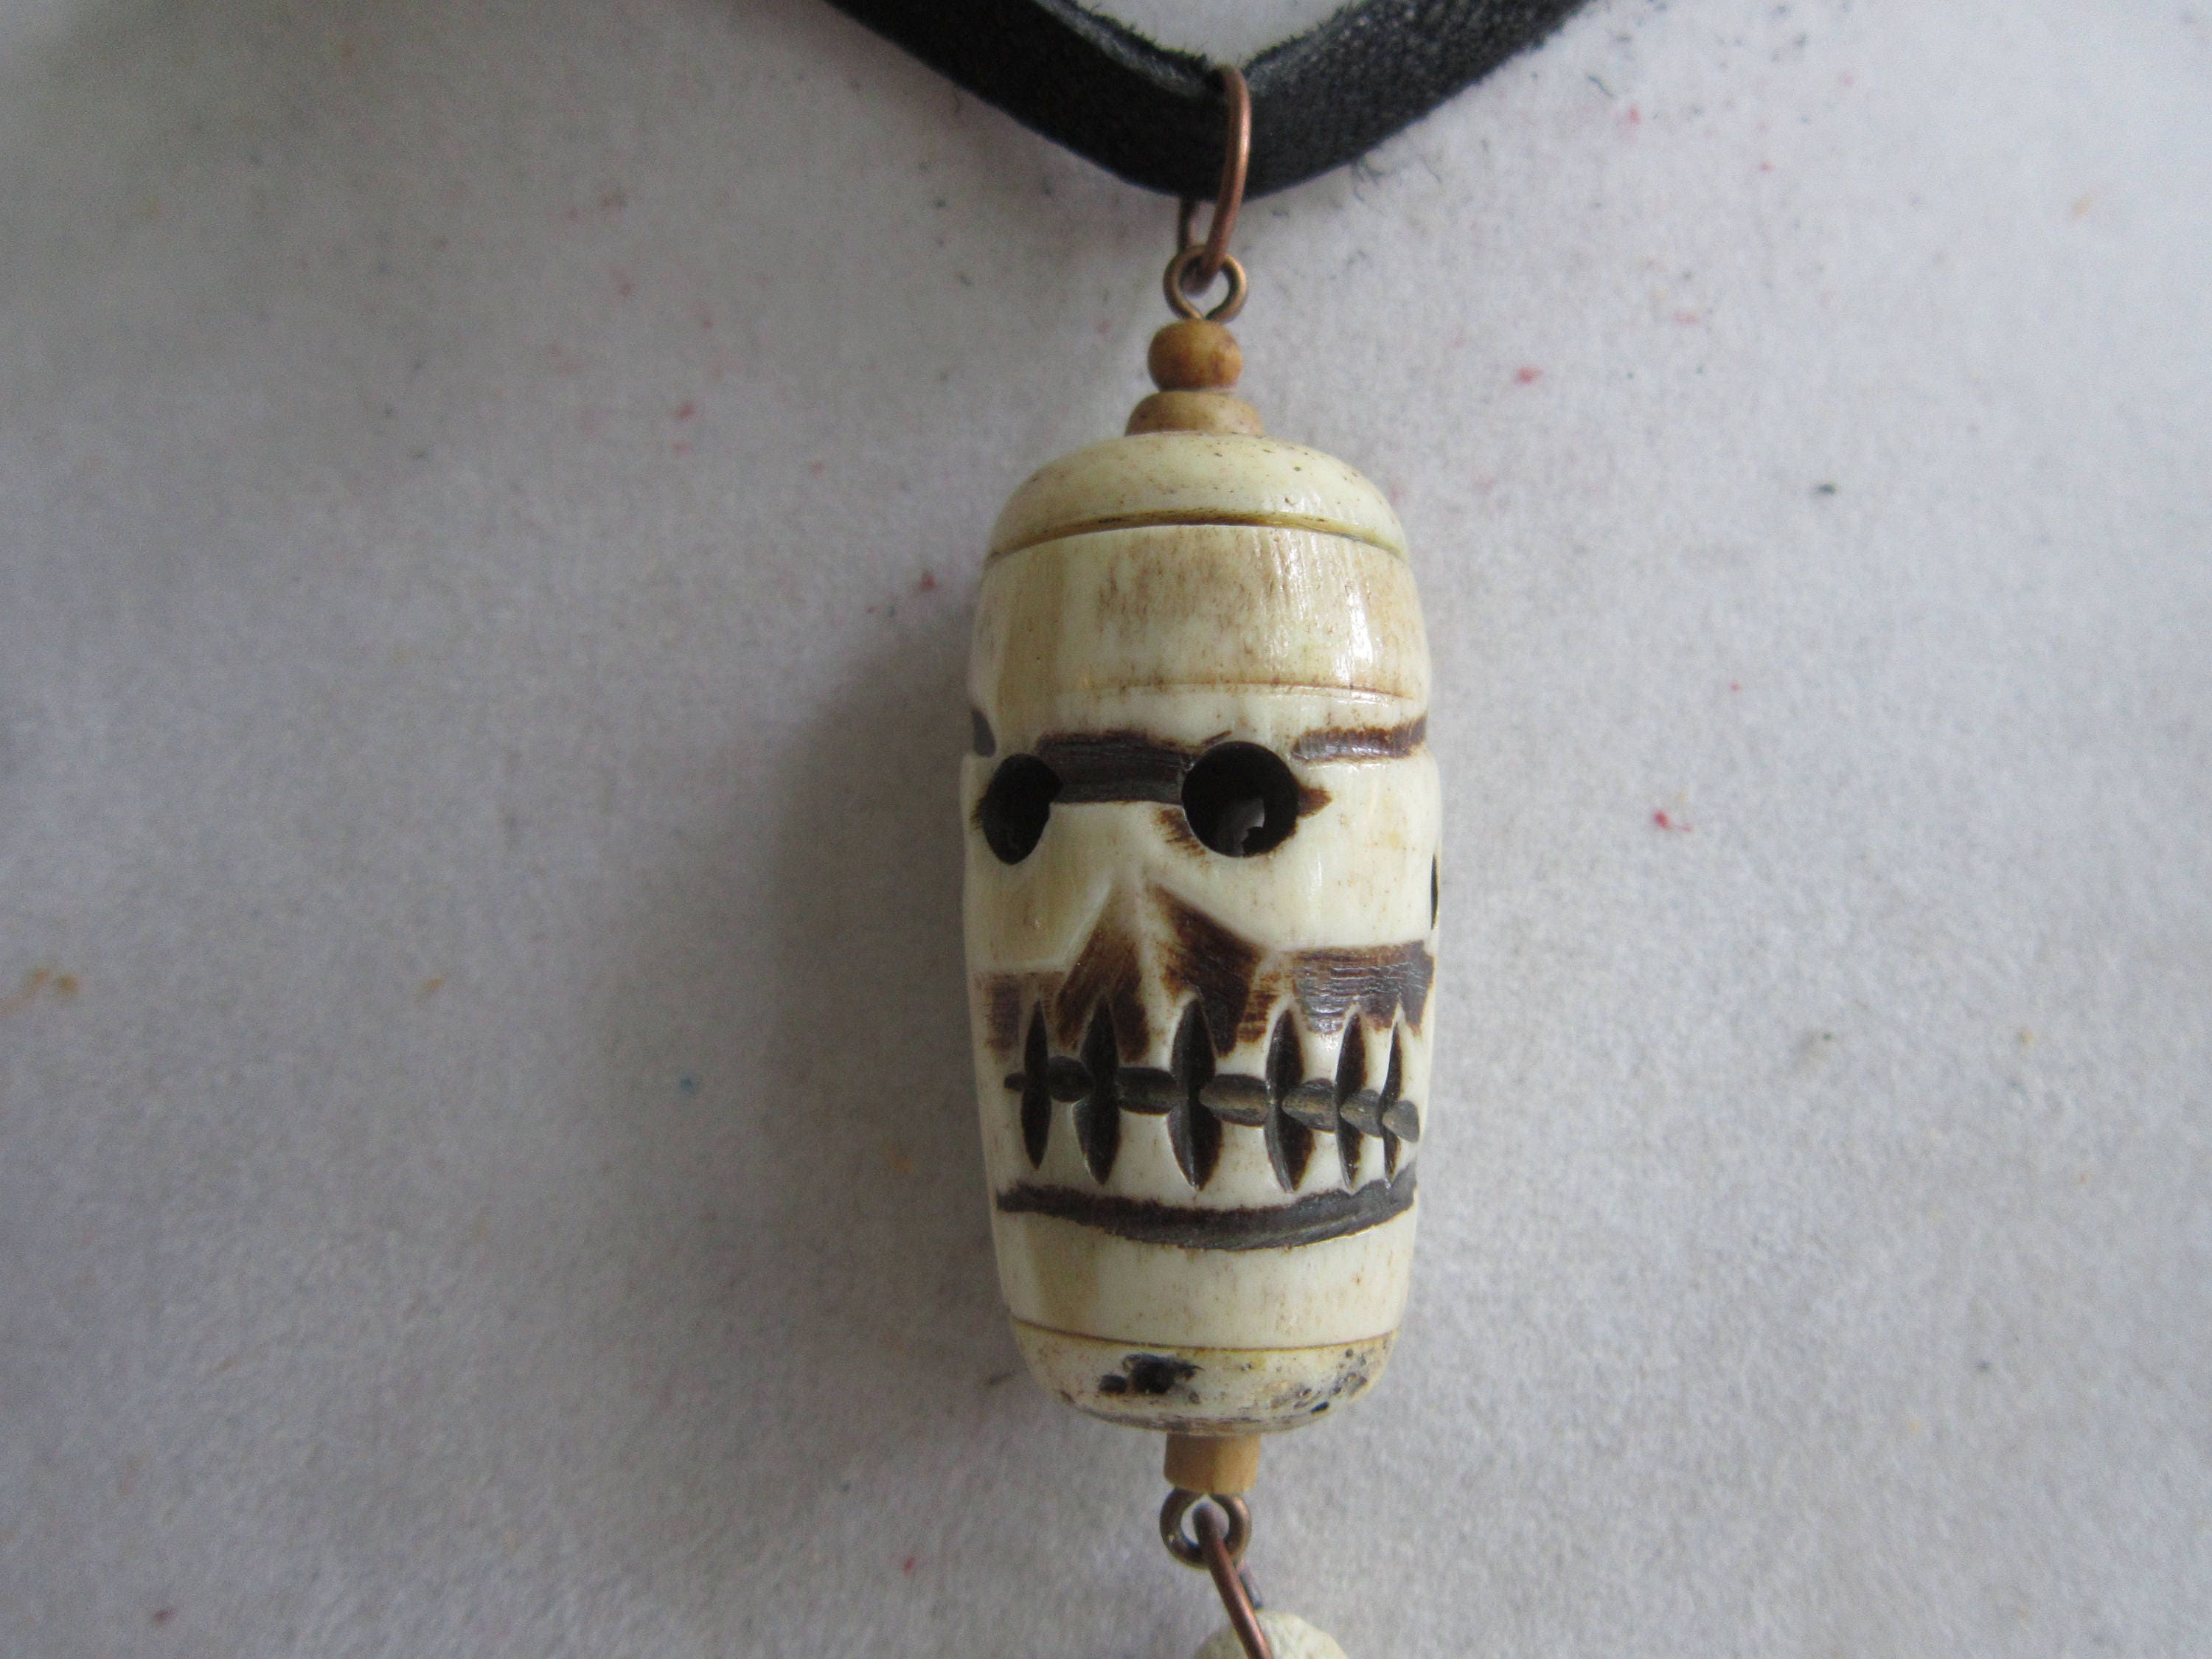 noonday real this imperial costume pin excited bone to necklace jewelry collection horn do get